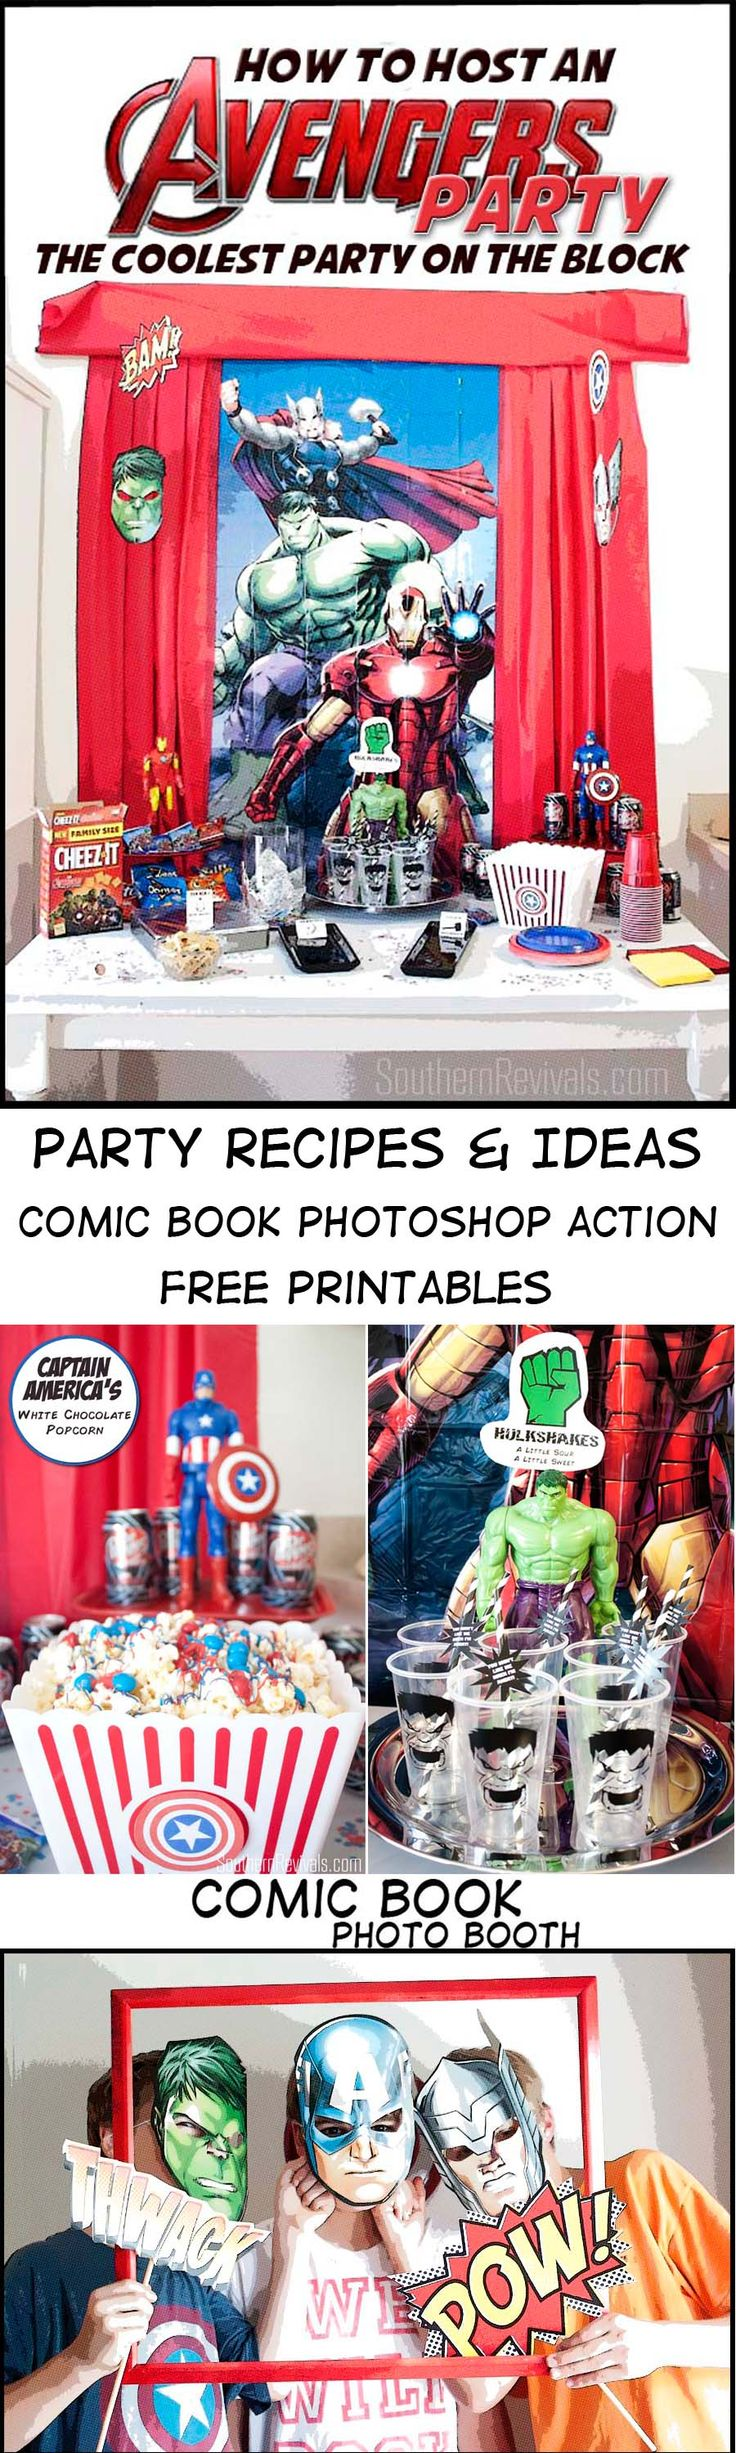 Host An Amazing Avengers Party | FREE Printables, Recipes & More - Southern Revivals #AvengersUnite #ad